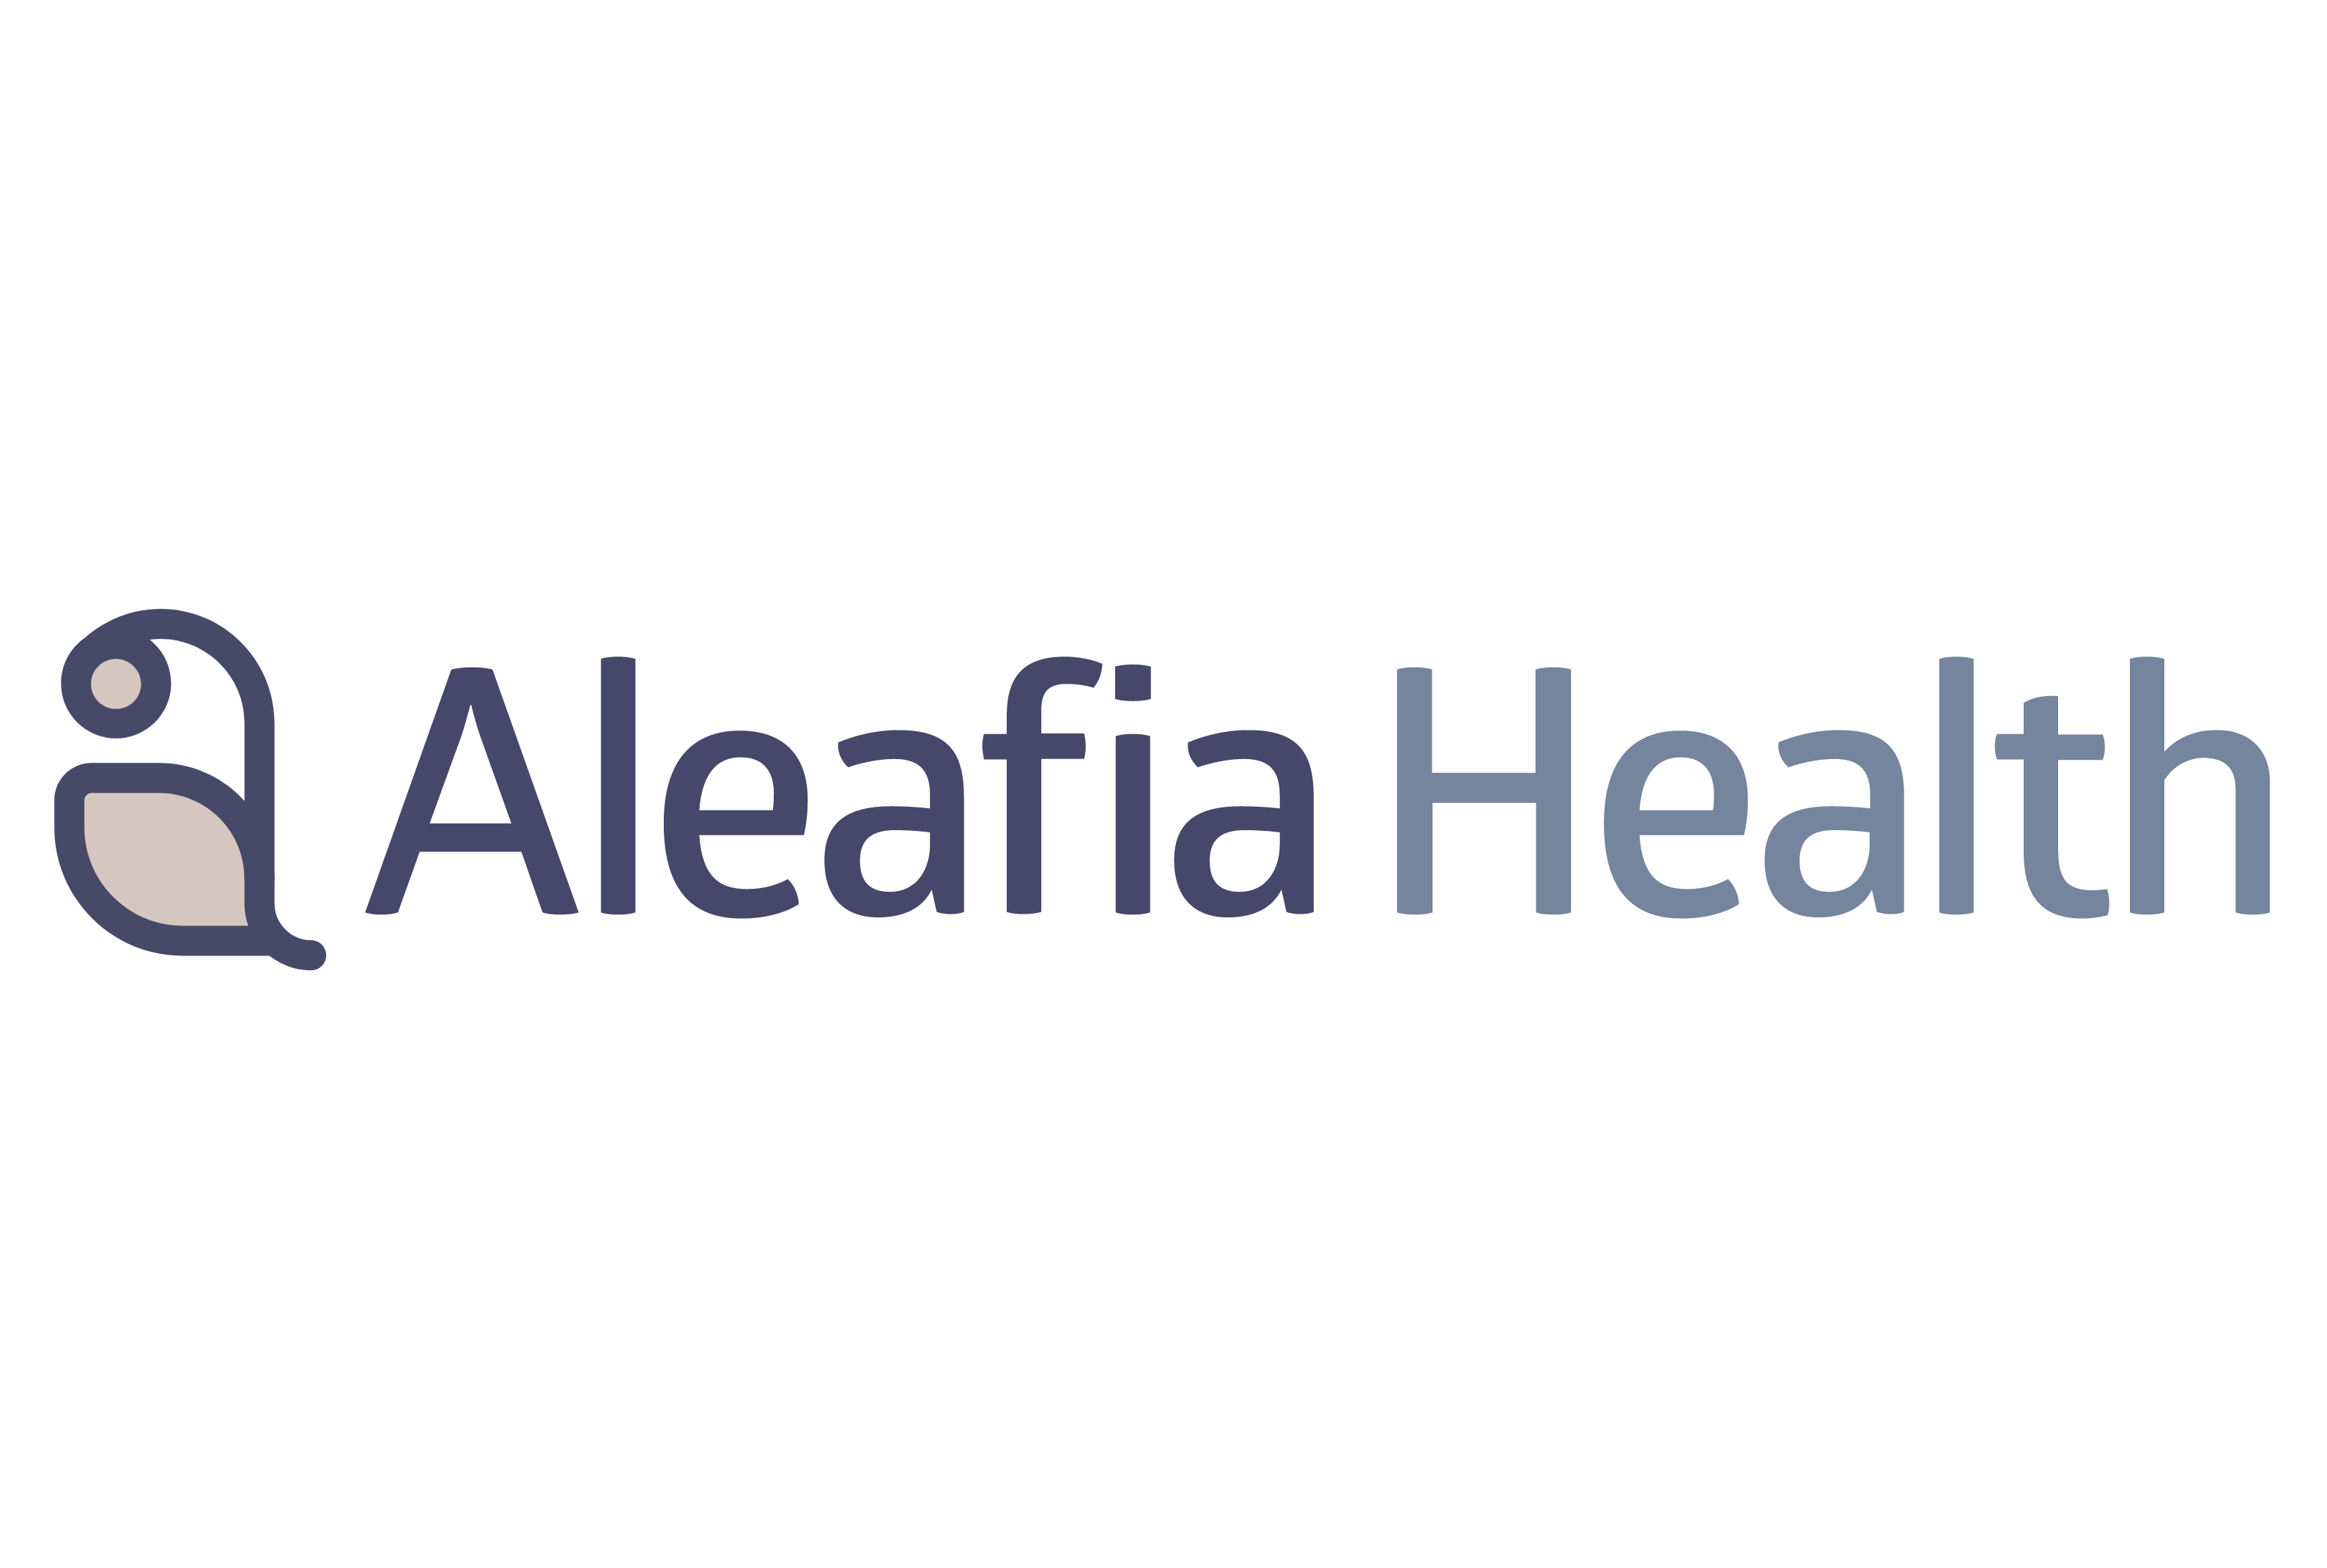 Aleafia Health Expands Adult-use Presence with Entrance in Saskatchewan, new Provincial Market